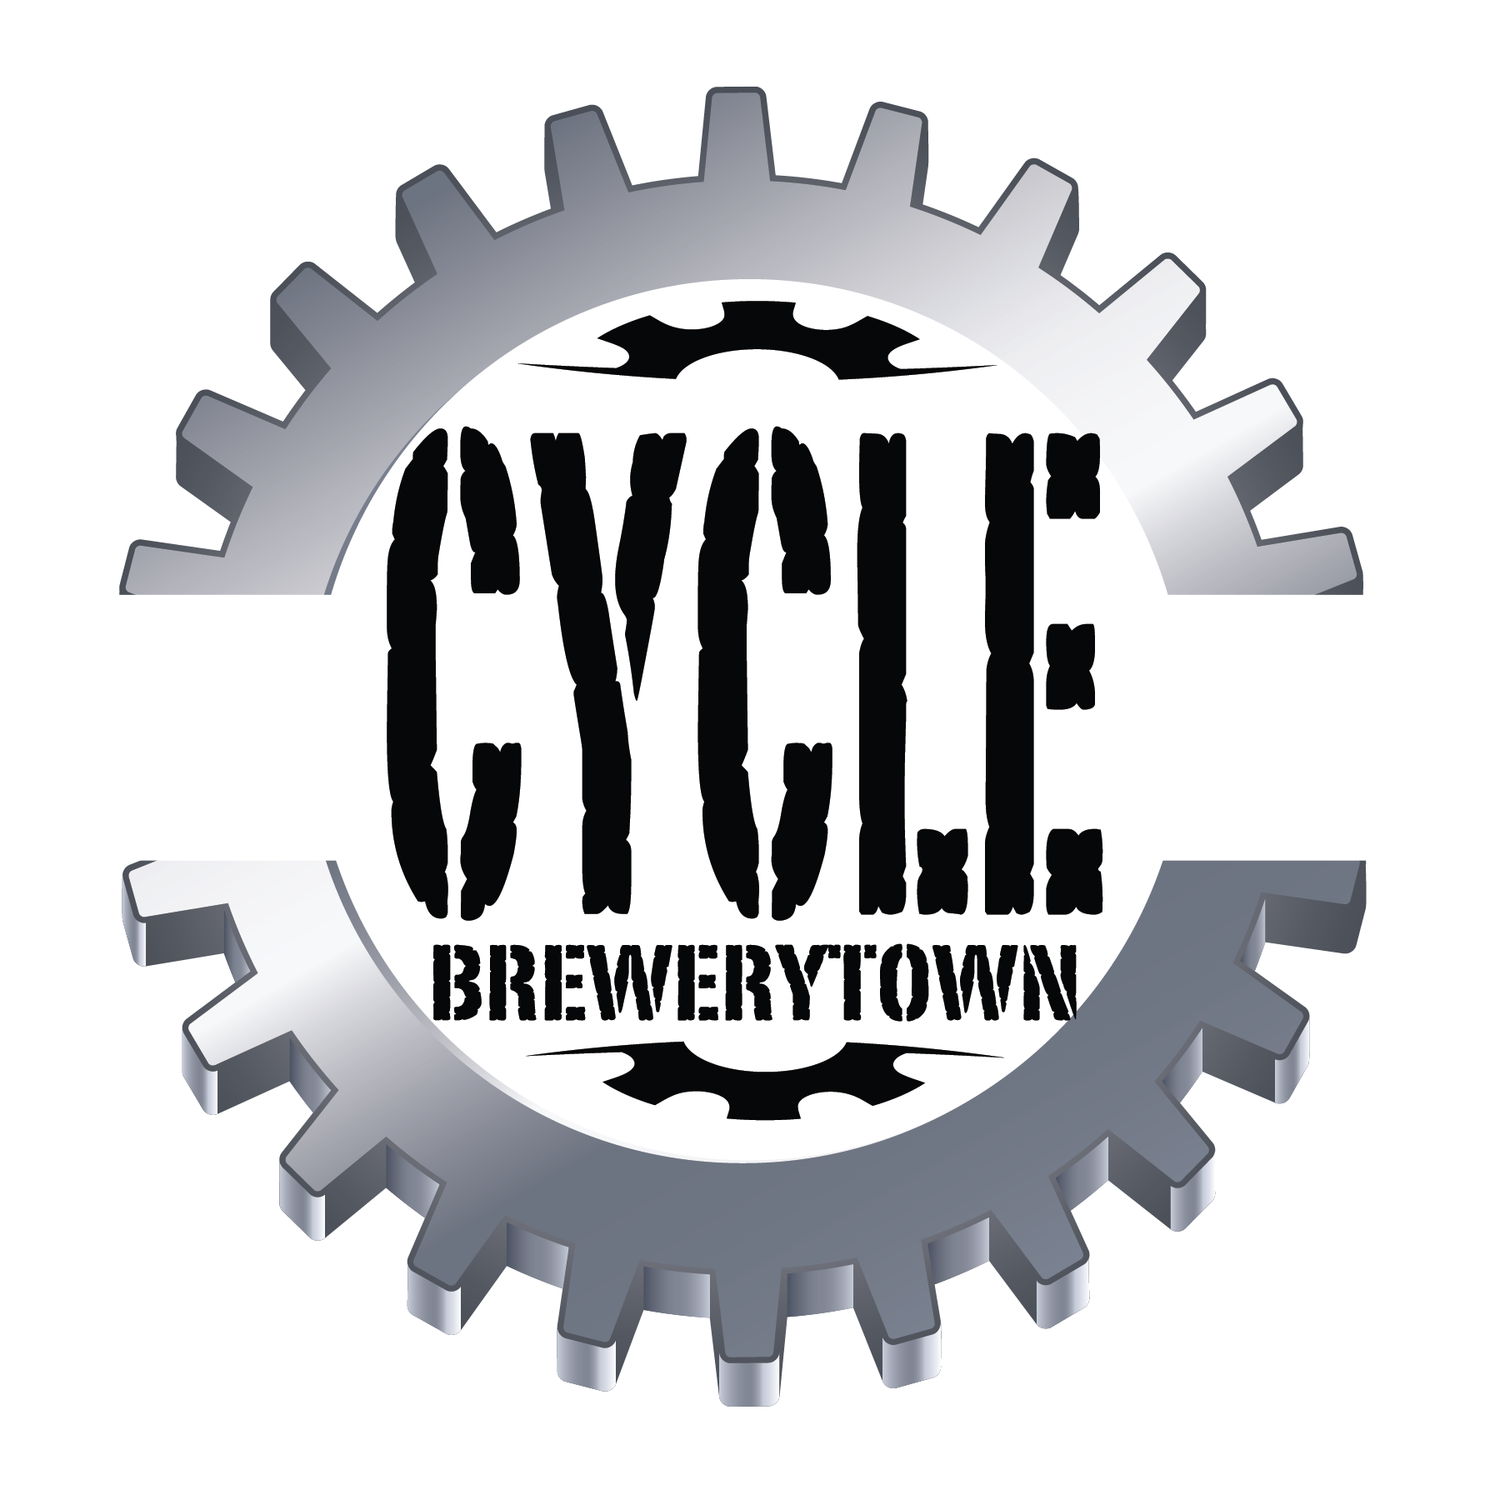 Cycle Brewerytown